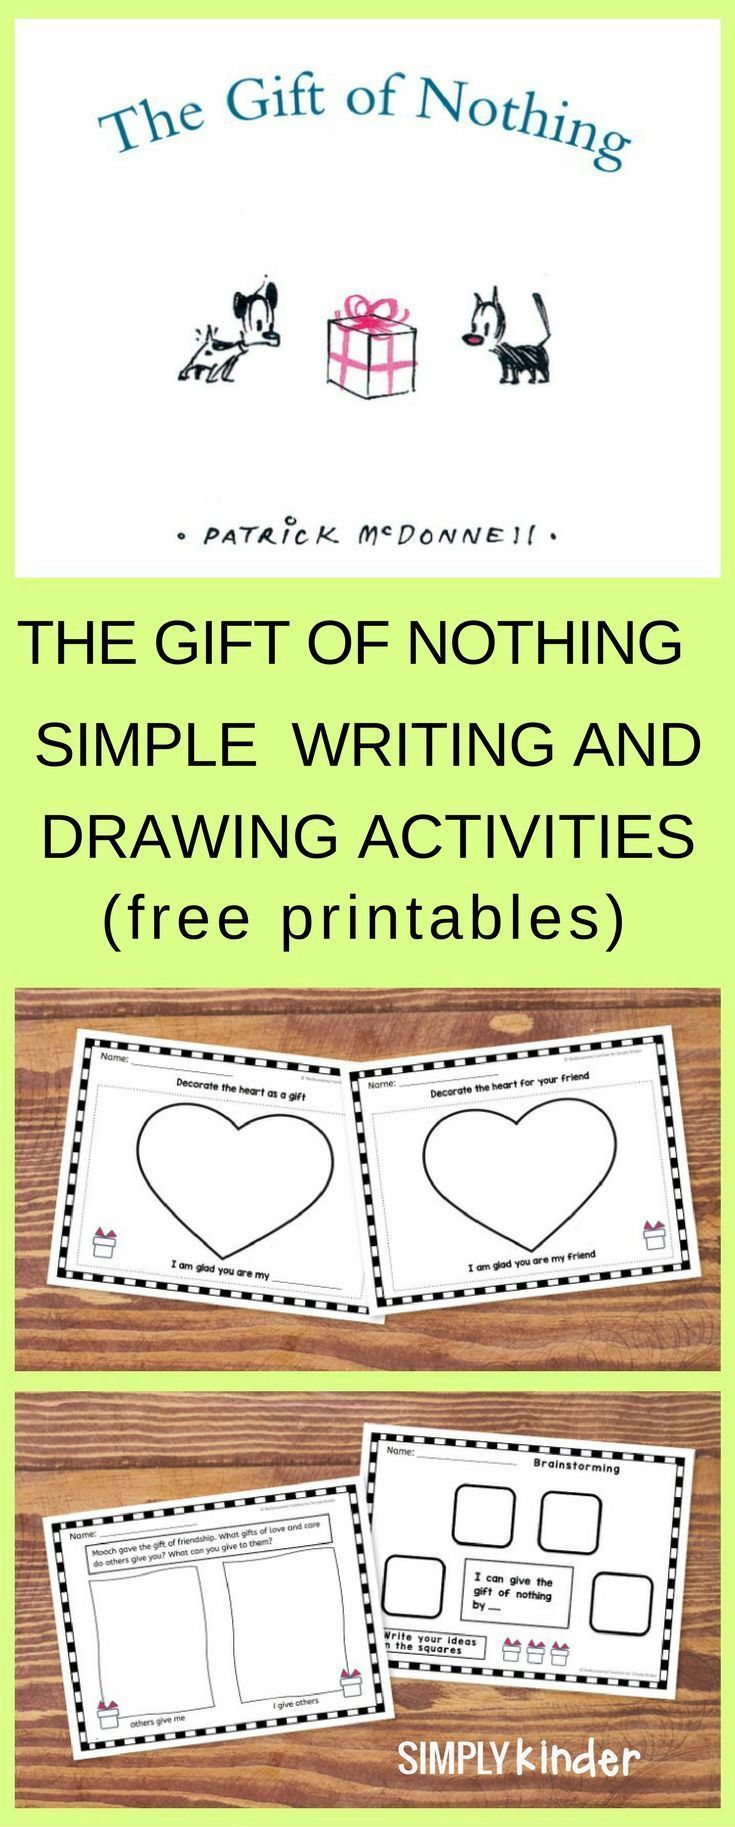 The Gift of Nothing Simple Writing and Drawing Activities